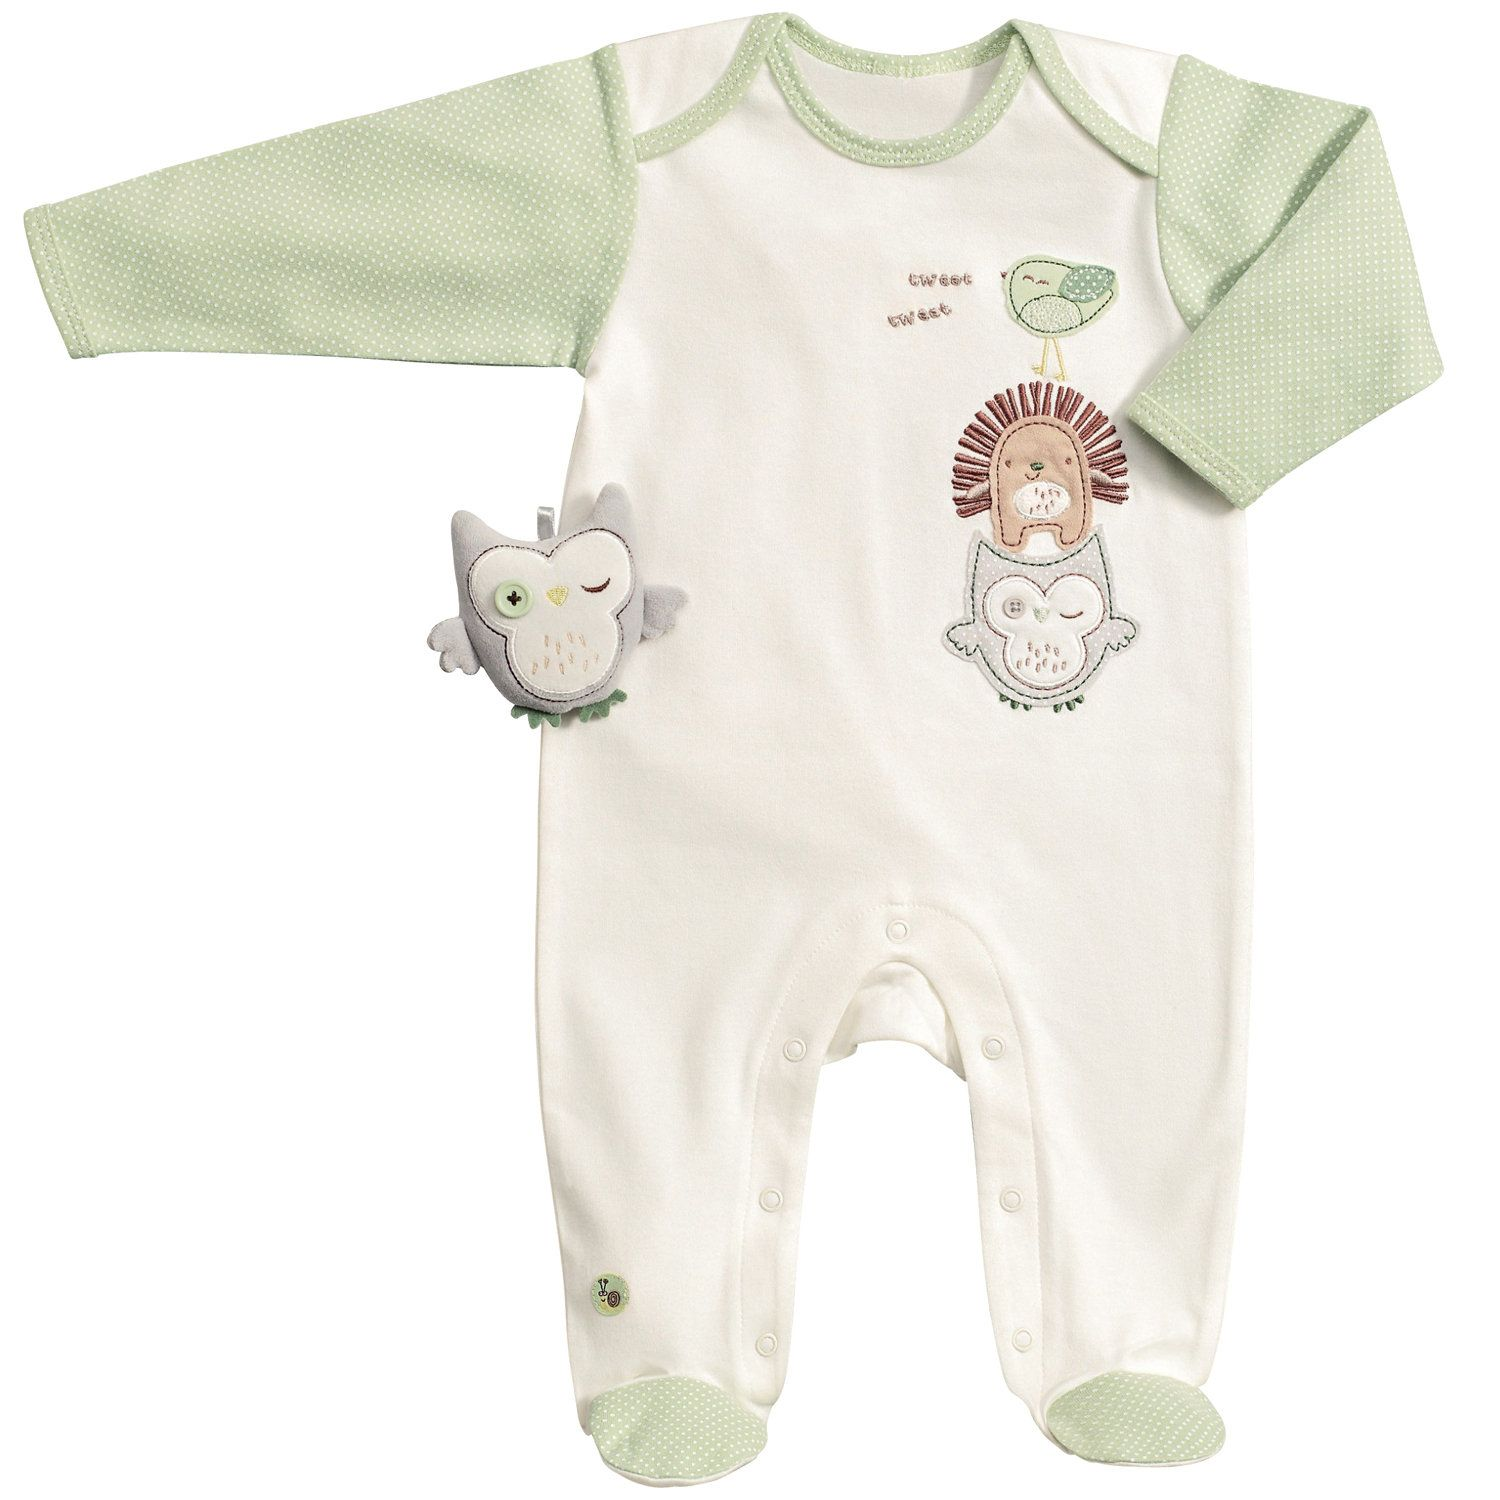 Olive & Henri Sleepsuit and Toy Future son Pinterest